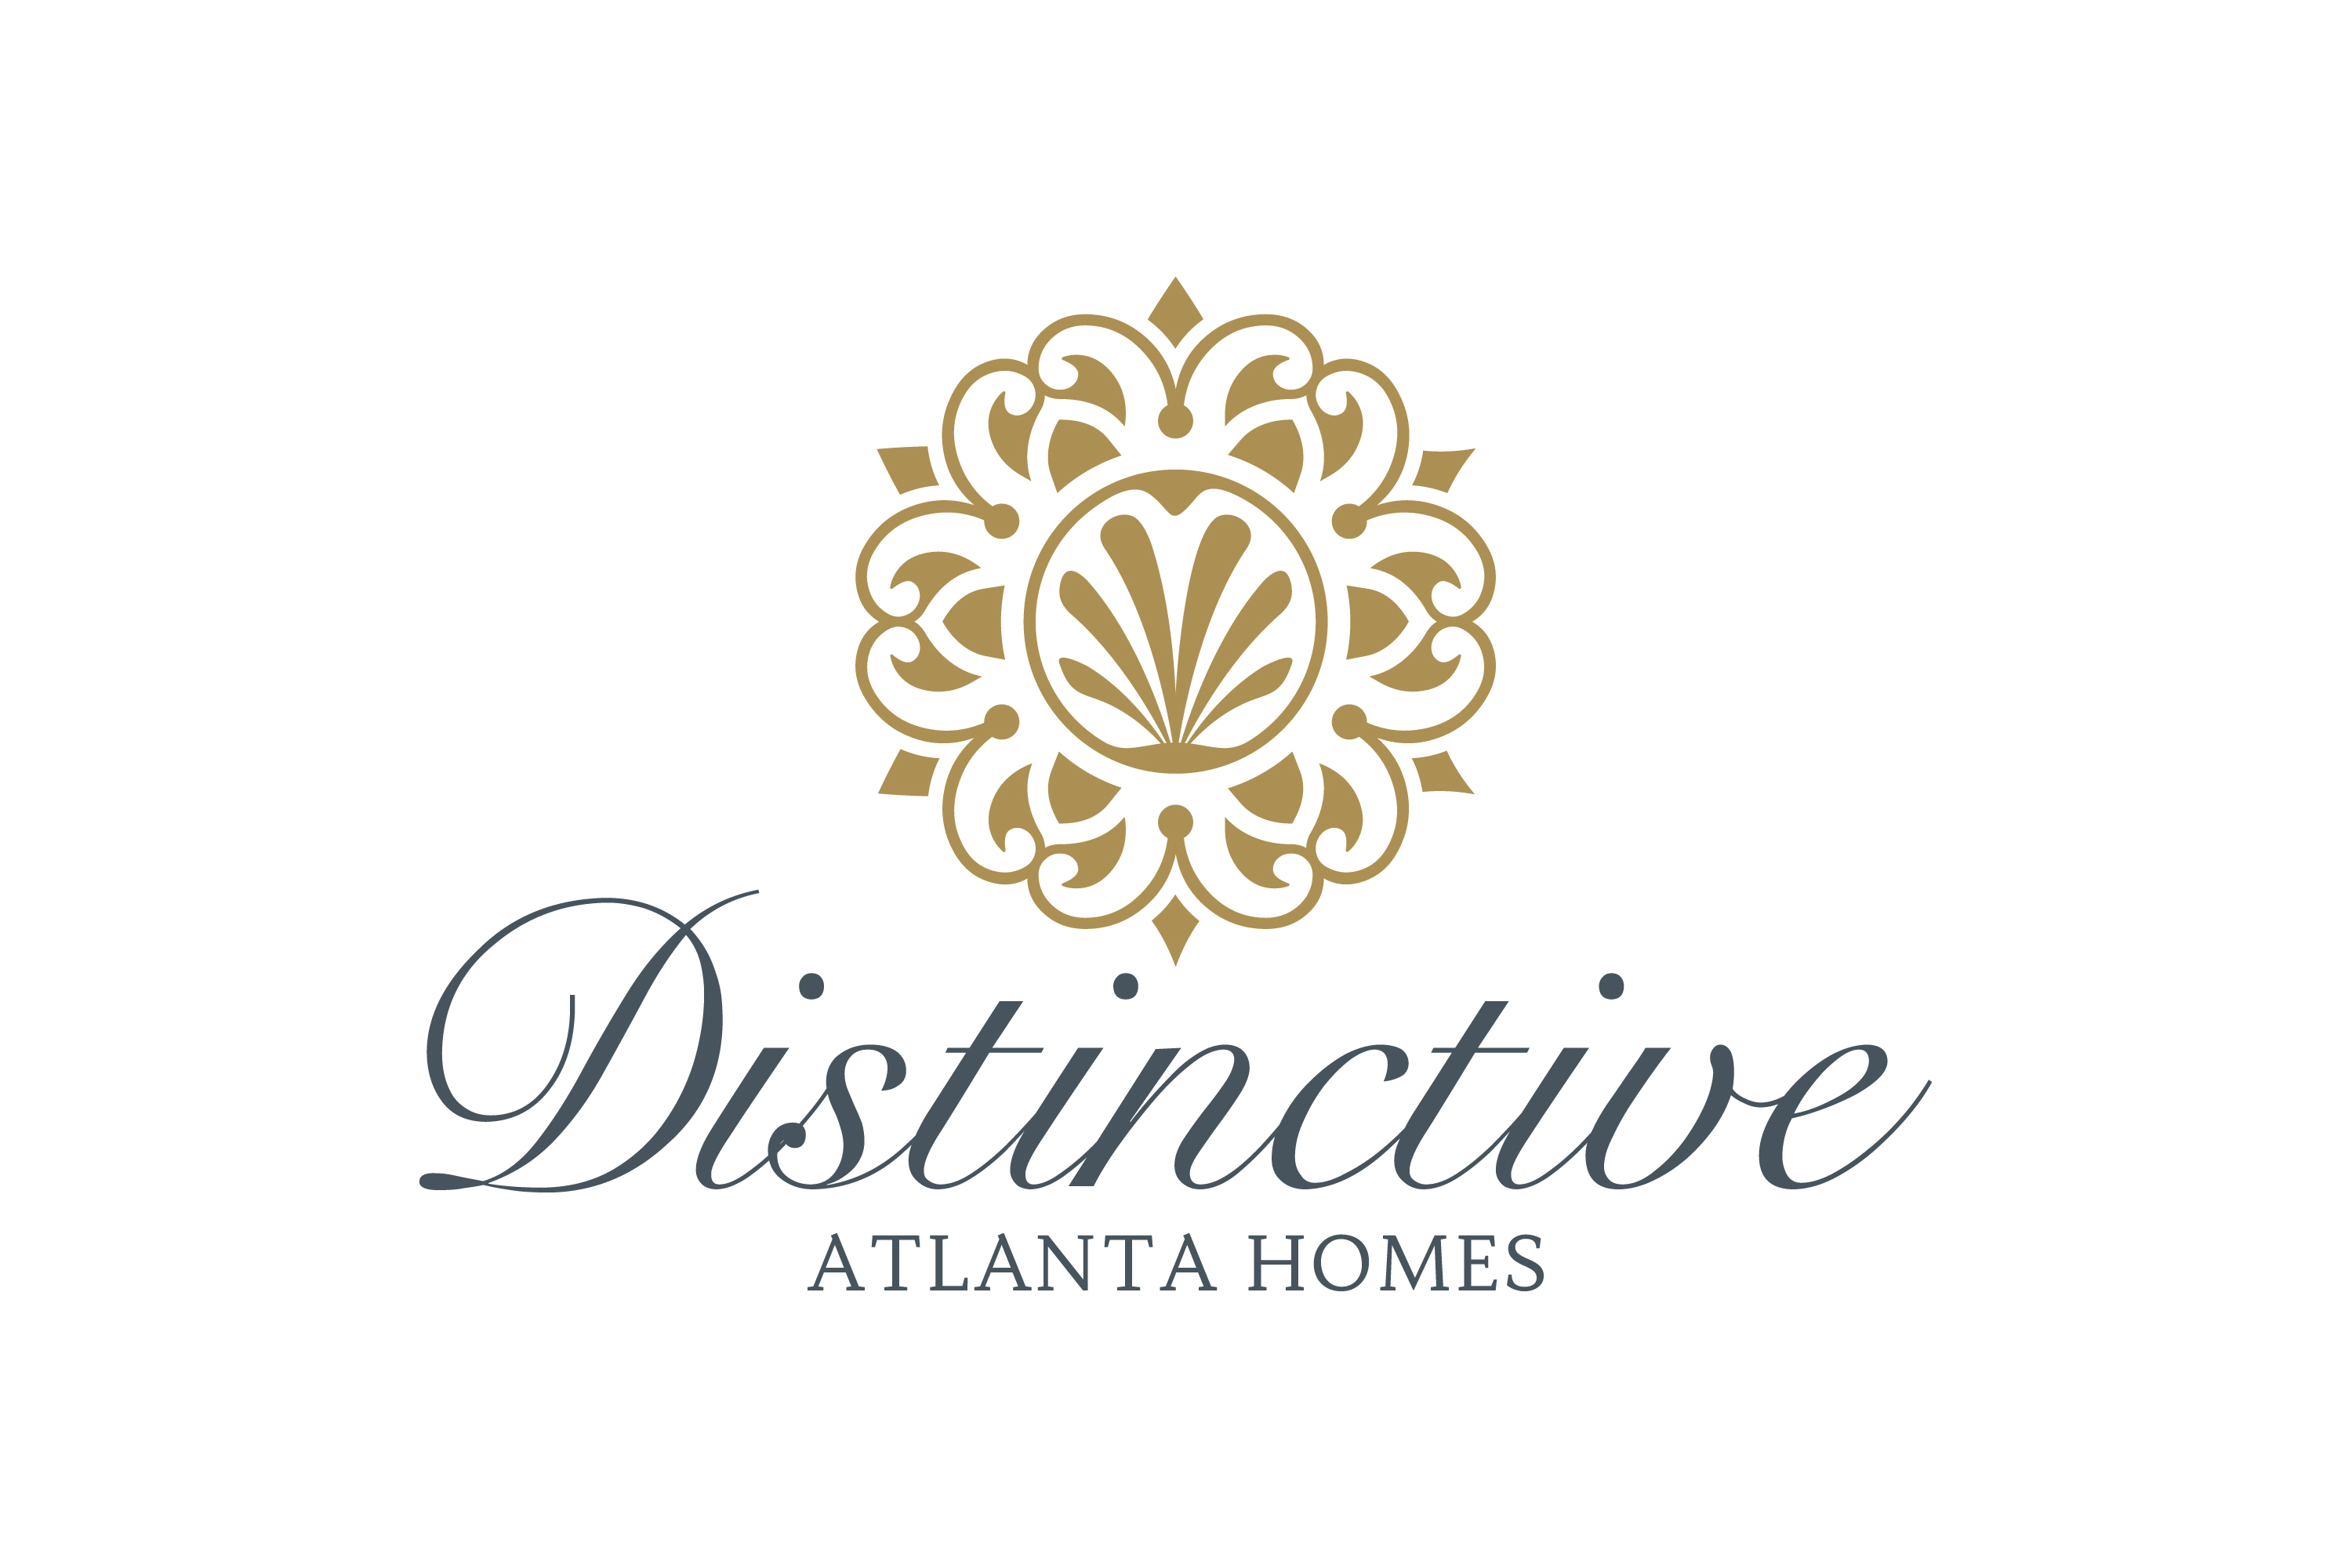 Luxury Home Sales Designation Design And Style